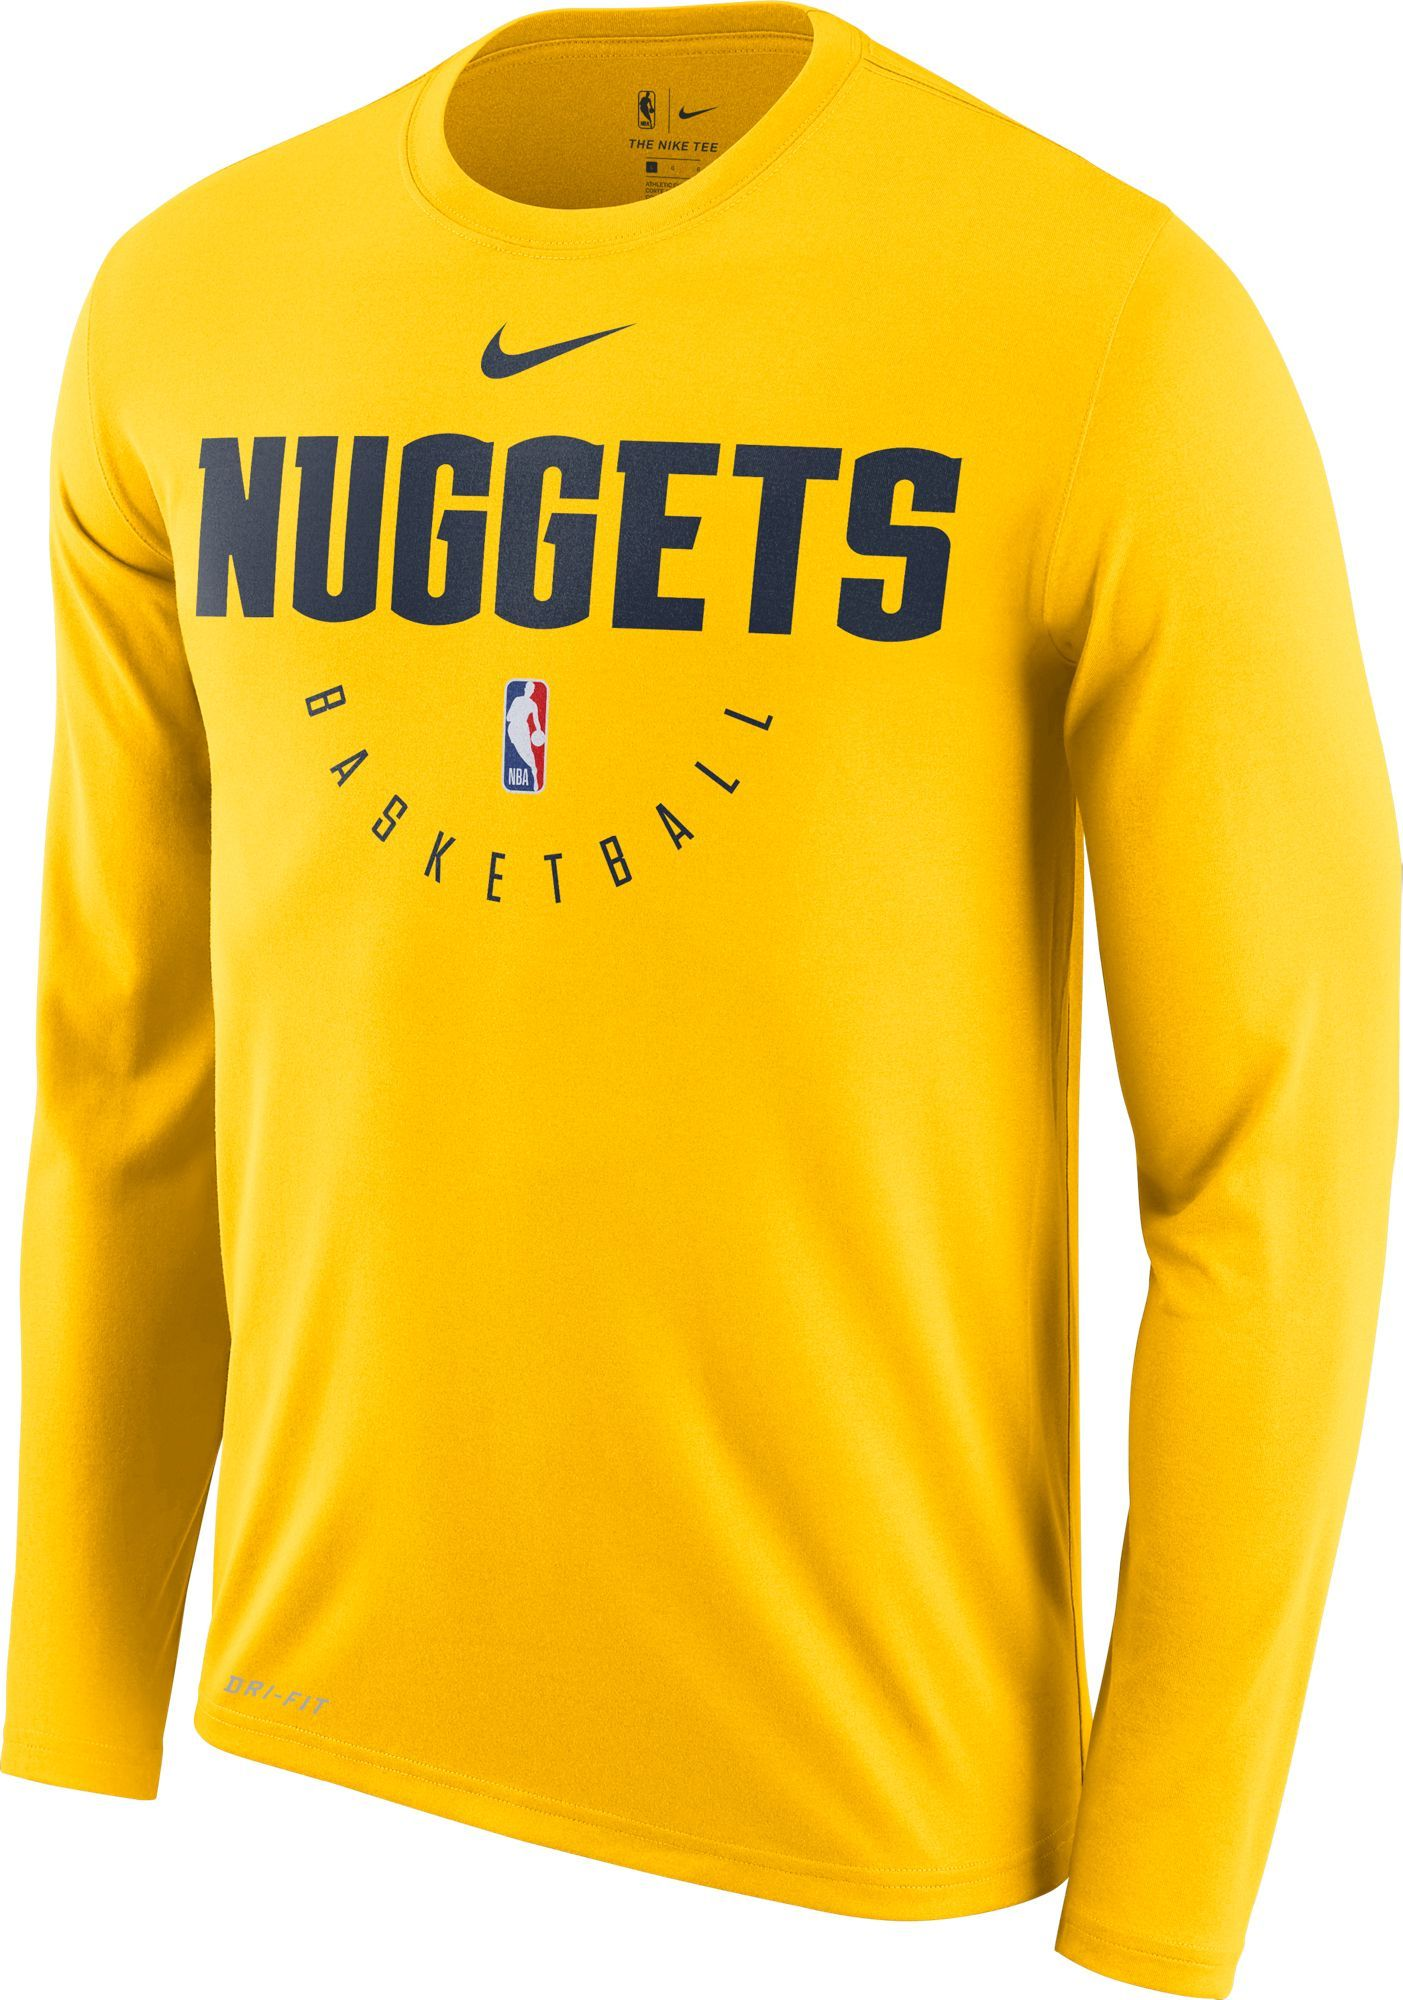 on sale 0afb8 1ea34 Nike Men s Denver Nuggets Dri-FIT Practice Long Sleeve Shirt, Size  XXL,  Team